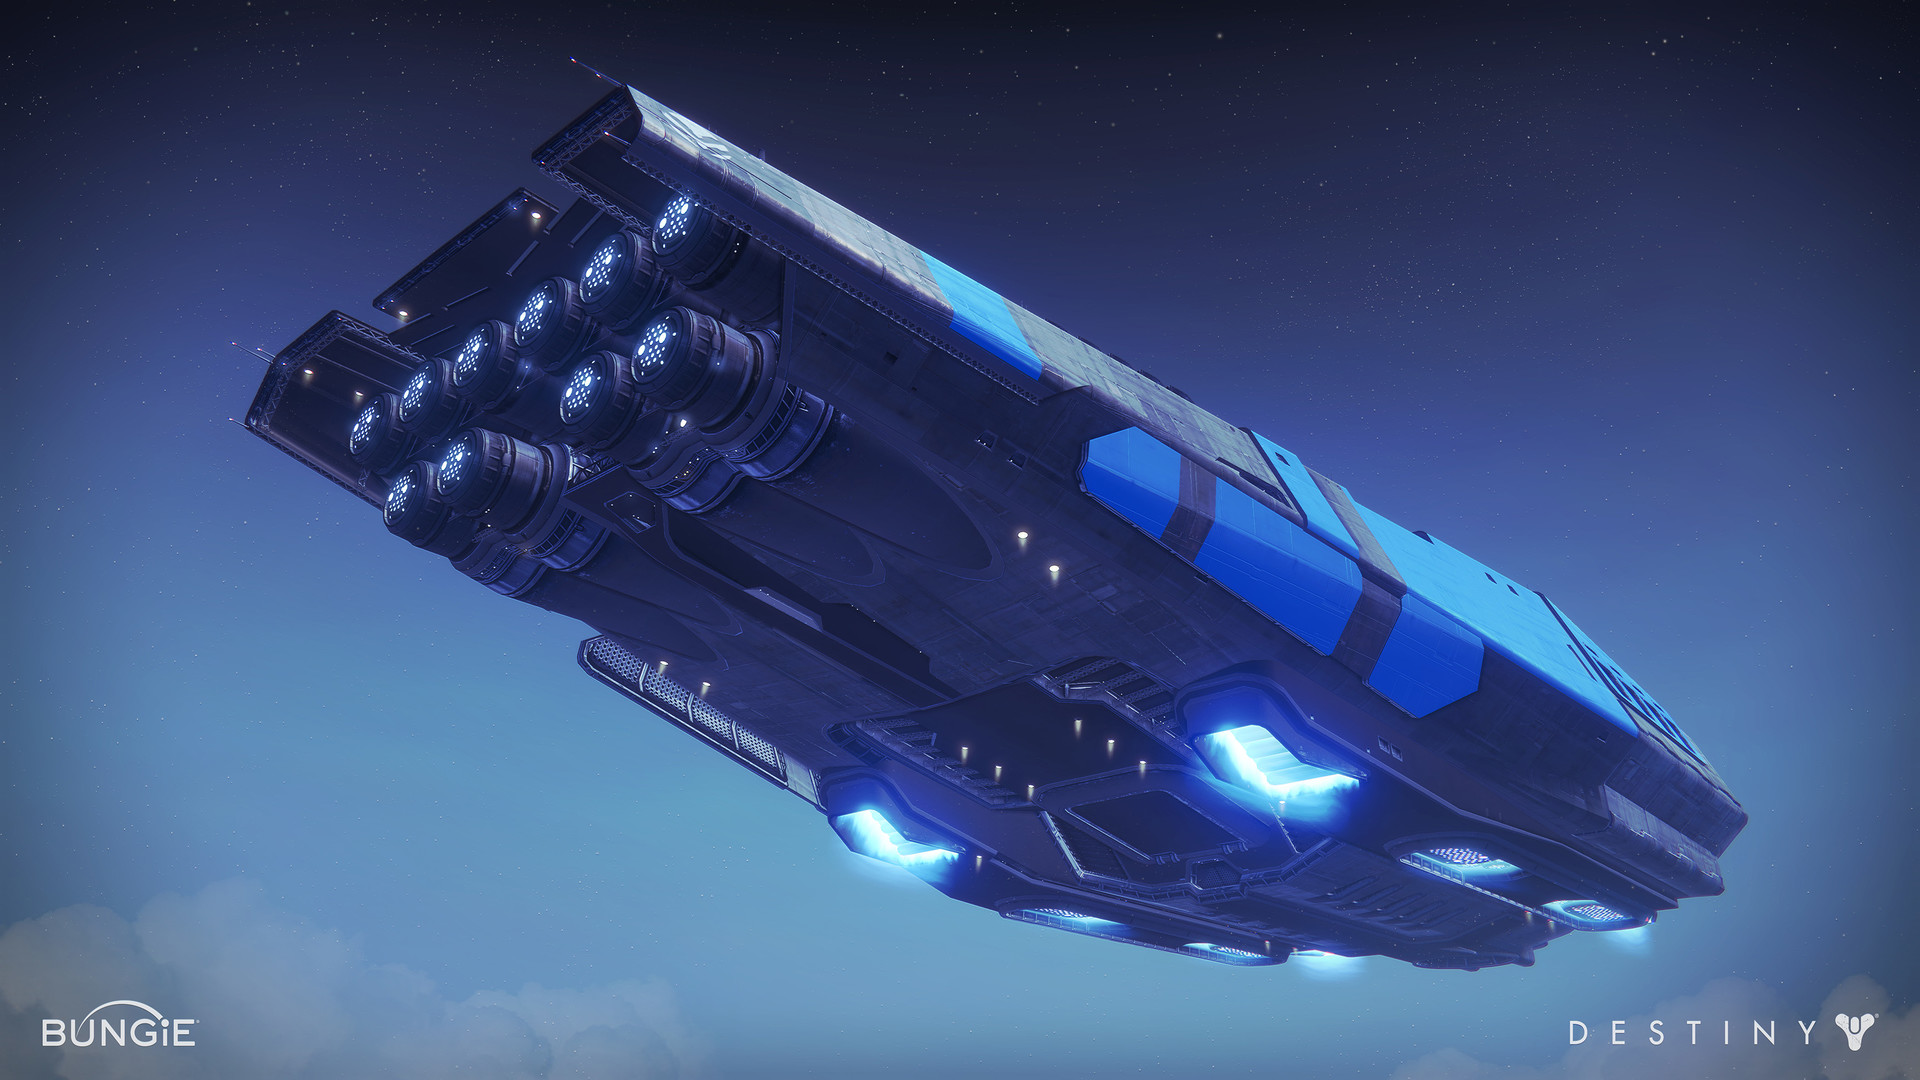 ArtStation-Destiny-The-Taken-King-Cabal-Carrier-Mark-Van-Haitsma-wallpaper-wpc5802262